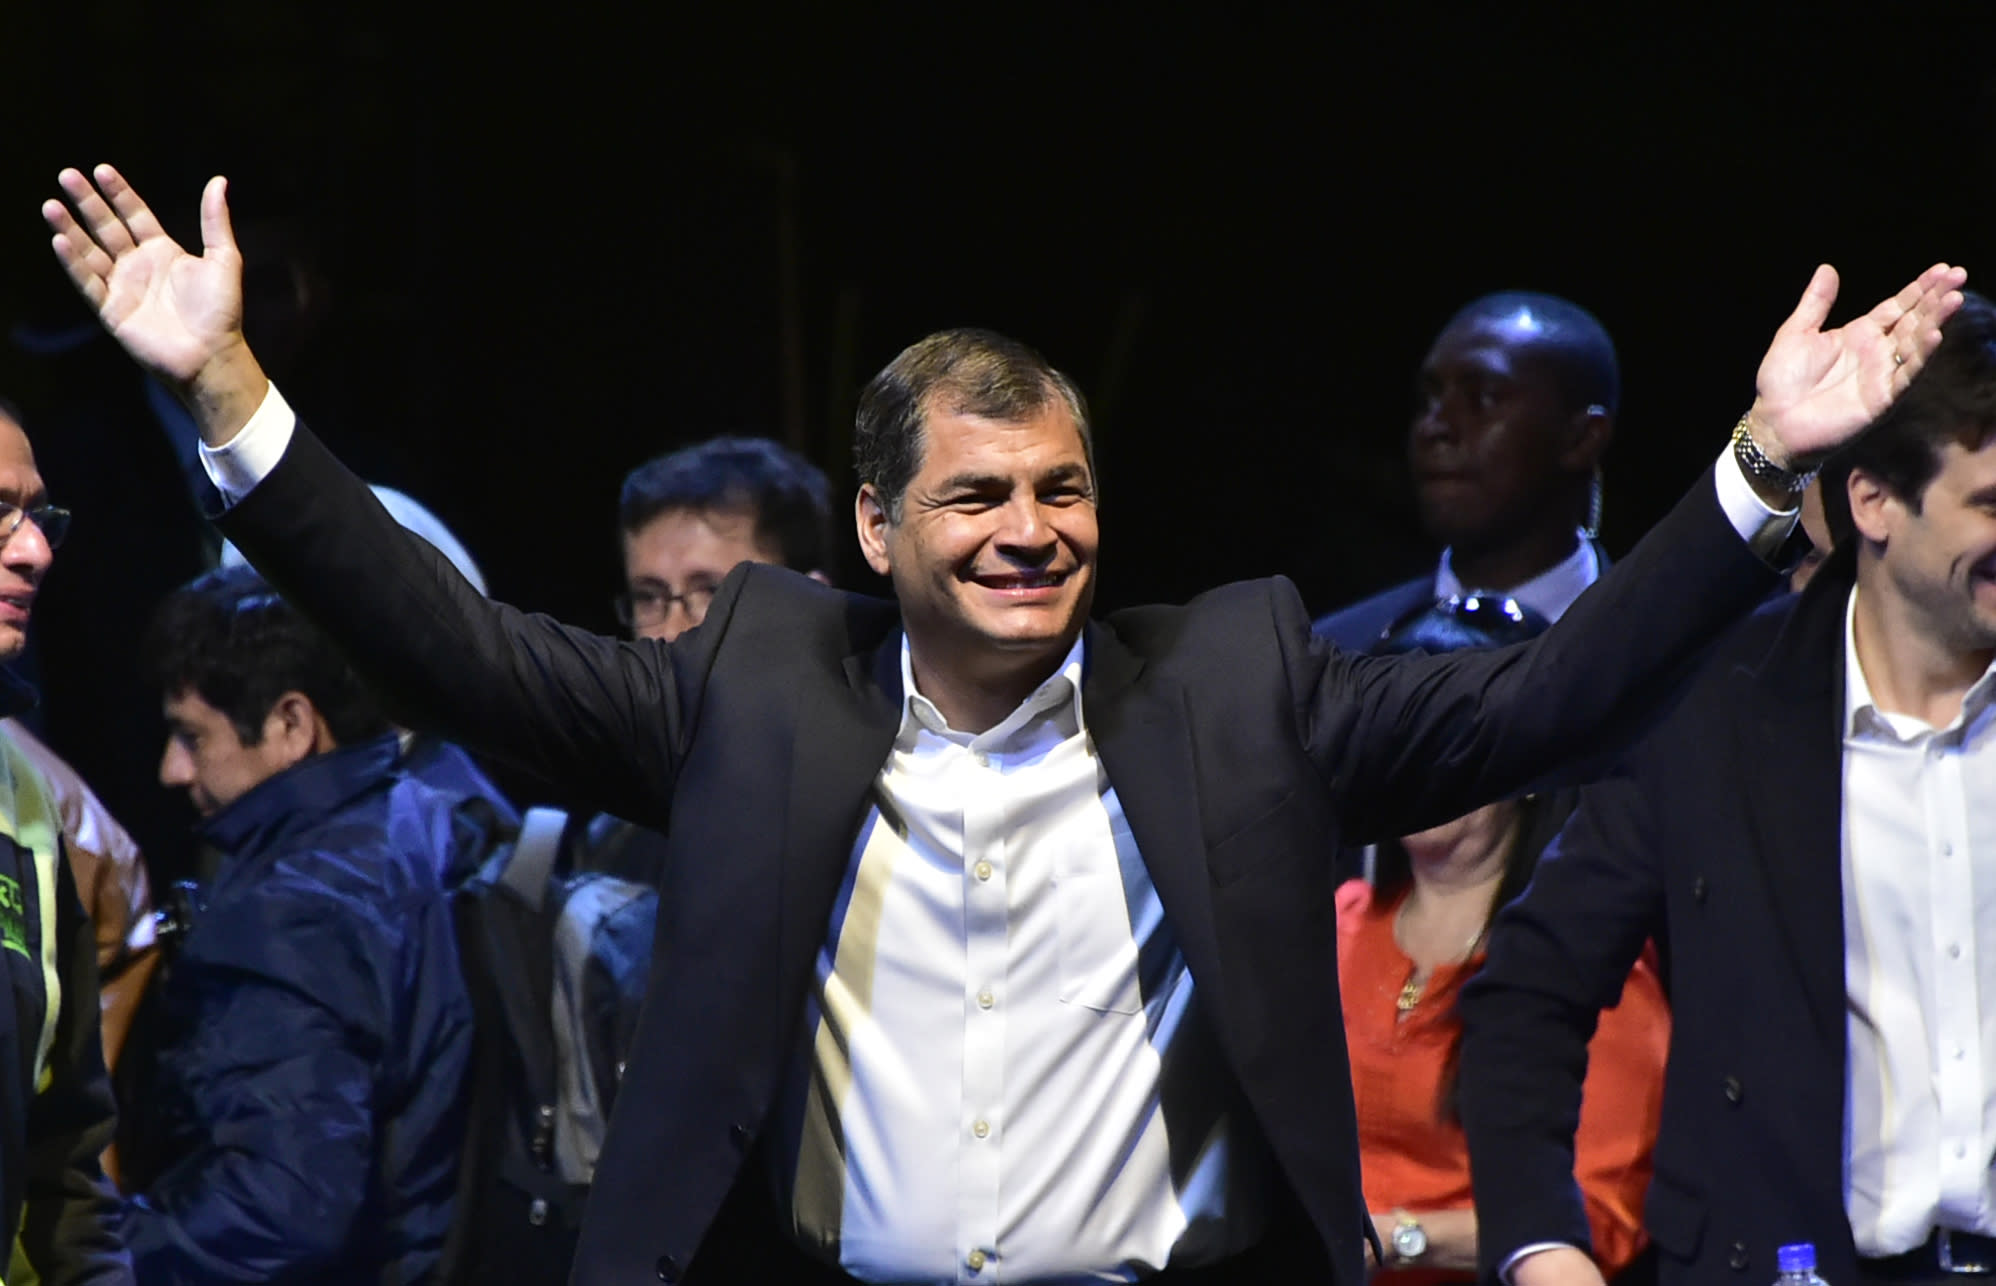 Ecuador's Constitutional Court has given lawmakers the green light to set new rules on term limits that would allow President Rafael Correa to extend his rule beyond 2017